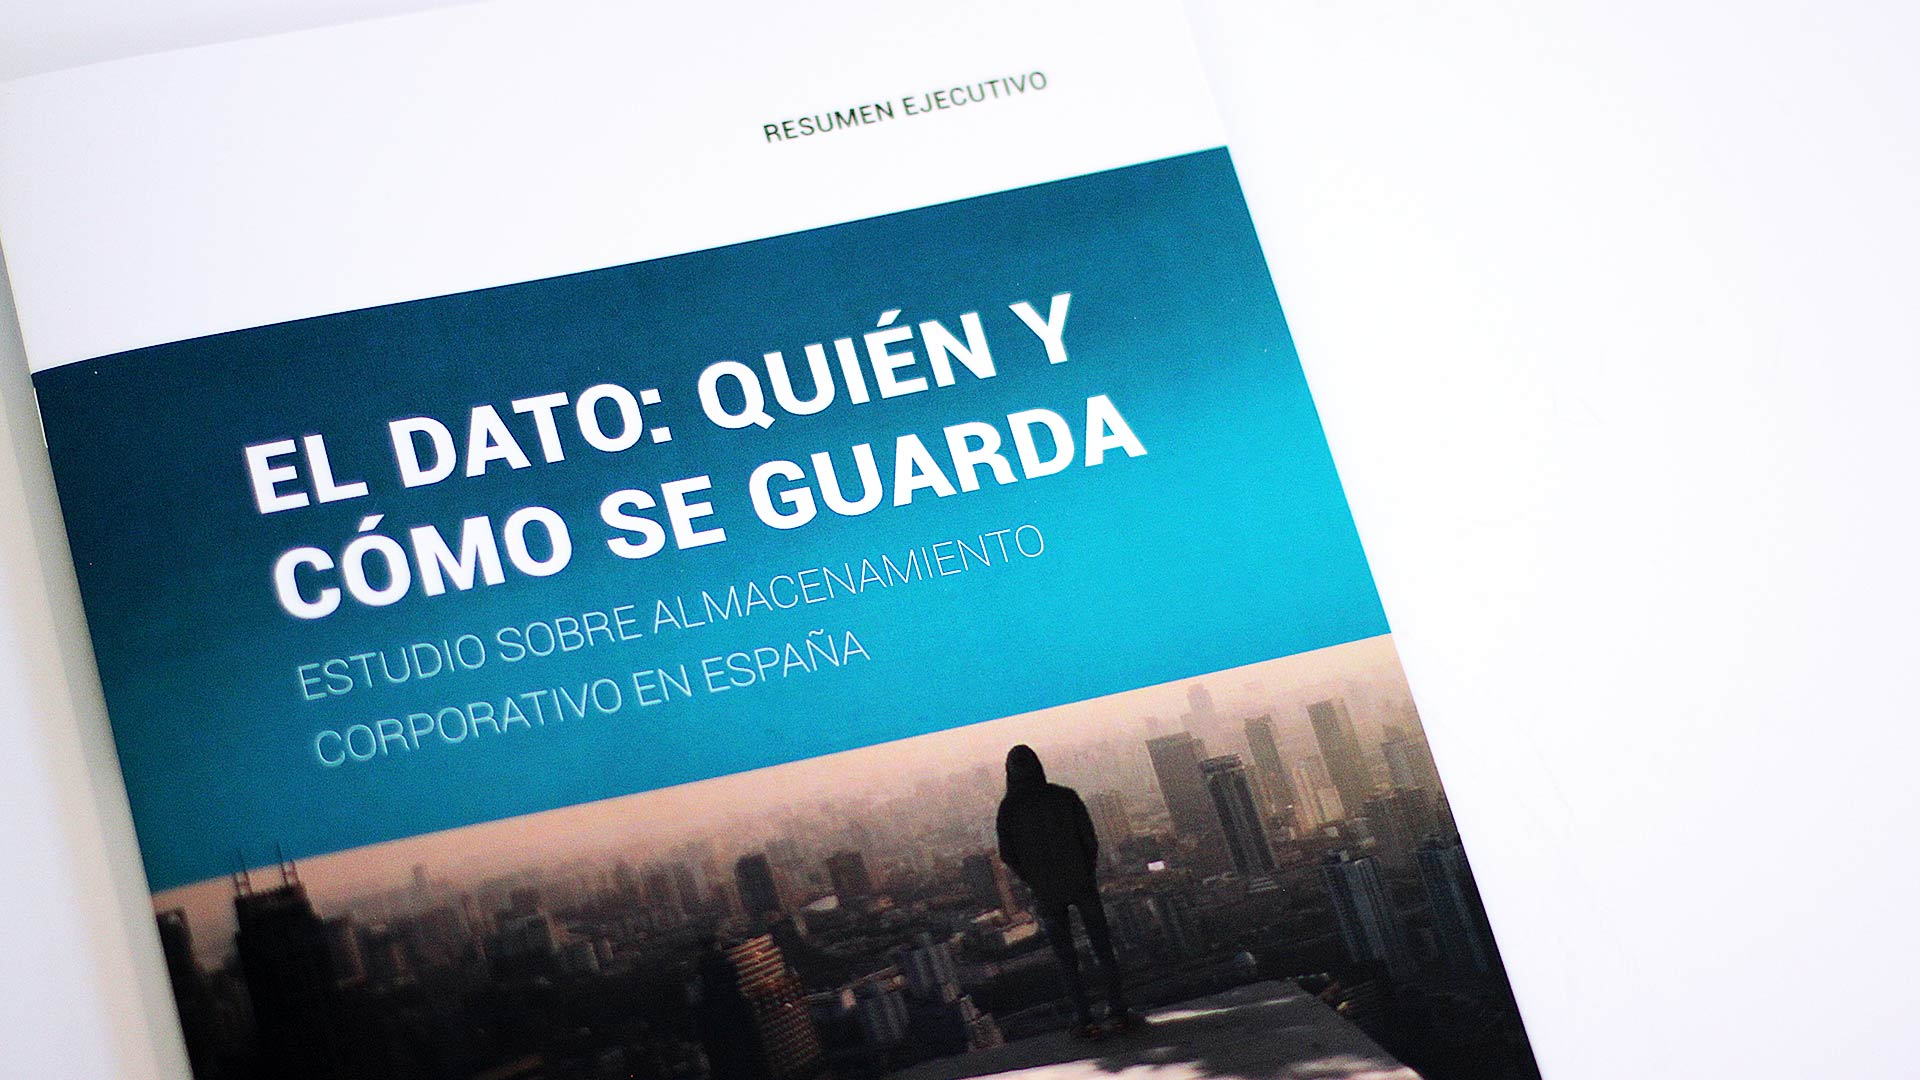 netapp-mediacloud-content-marketing-informe-resumen-ejecutivo-ebook-2017-08